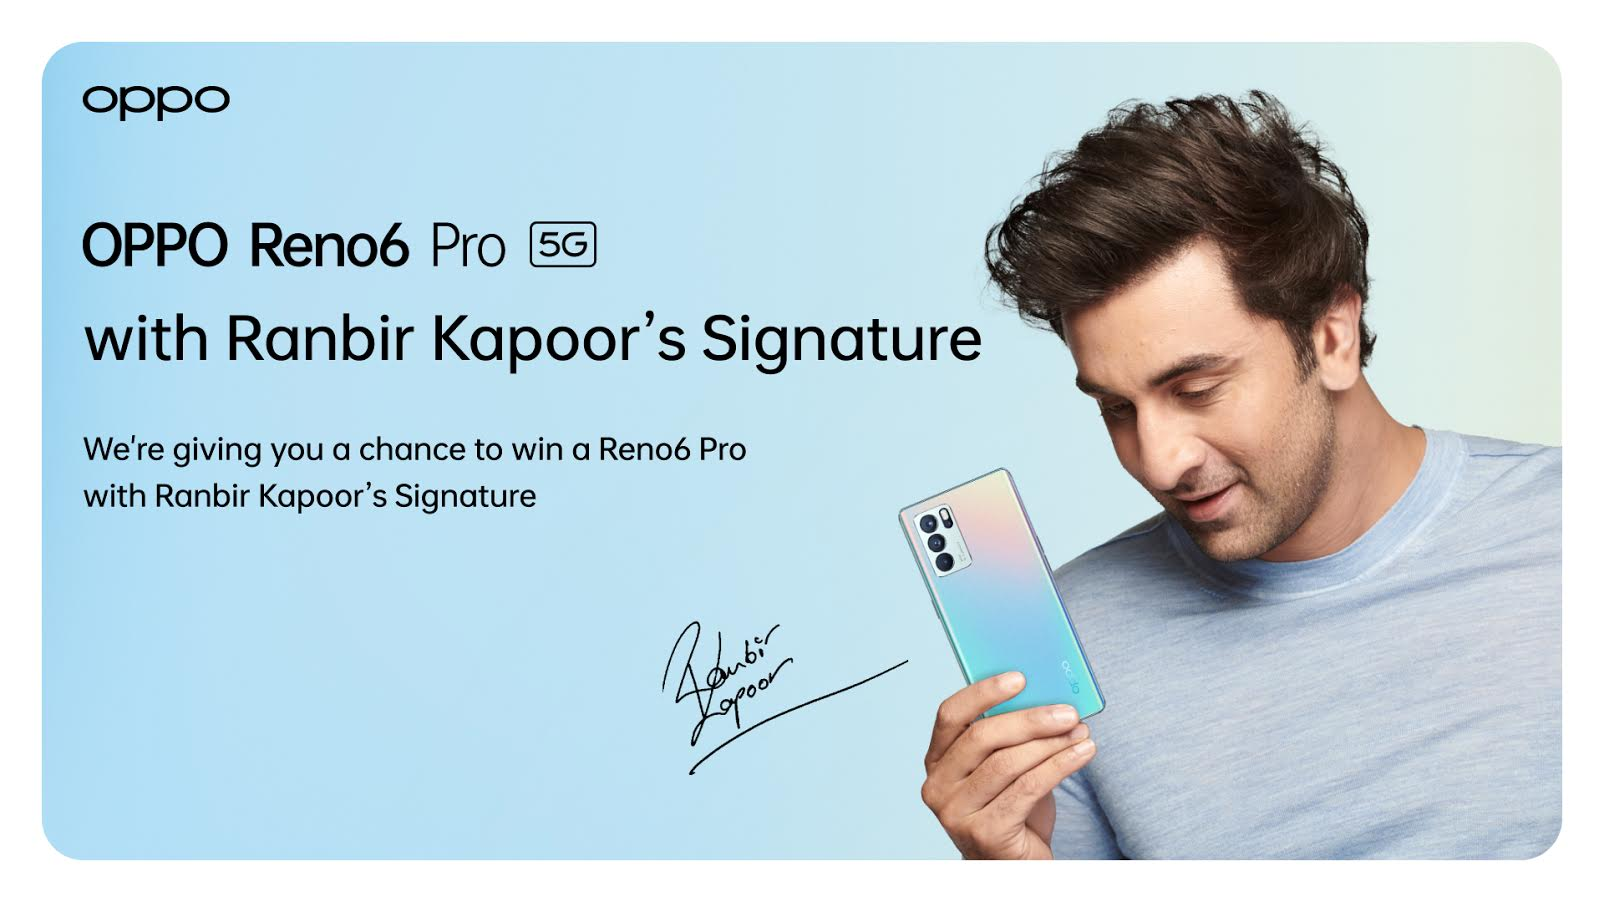 OPPO thanks its customers: Fans get the chance to grab the newly launched 5G Reno6 Pro 5G, signed by Ranbir Kapoor